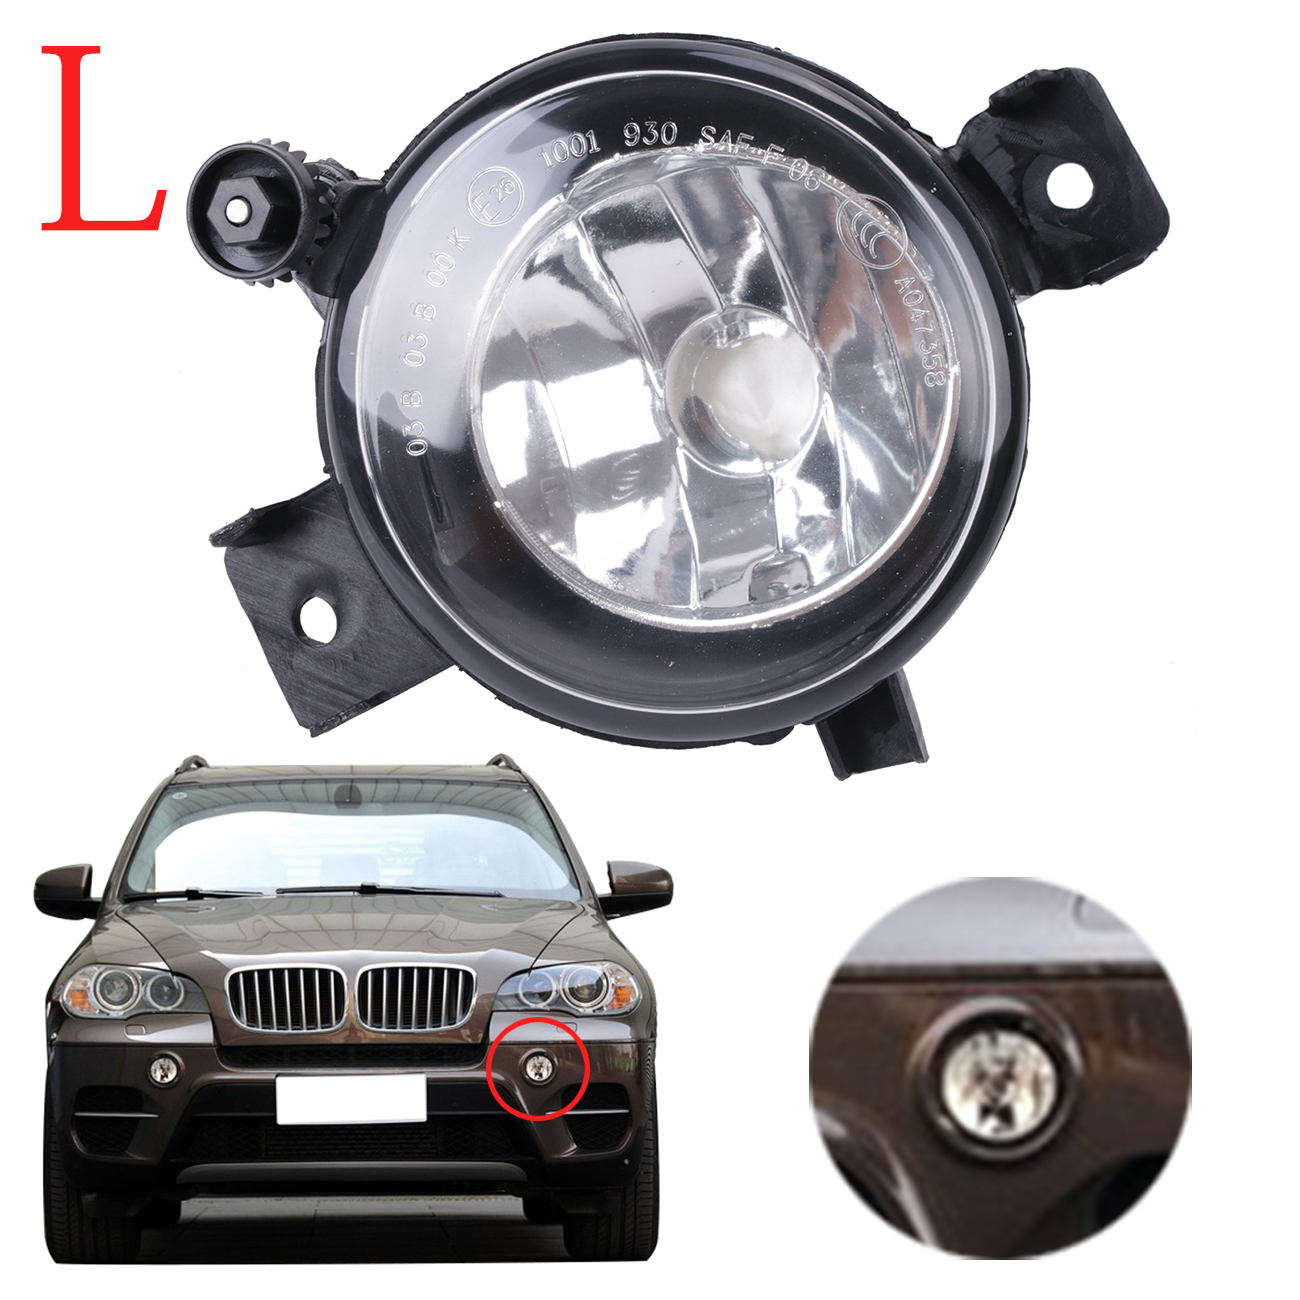 Car-Styling Left Side Bumper Fog Light Clear Glass Lens Driving Lamp Foglamp For BMW X5 E70 2011 2012 2013 63177224643 #W086-L high quality 1pair bumper driving fog light lamp lens for bmw e39 5 series 525i 530i 540i 4door 2001 2002 2003 car accessory q35